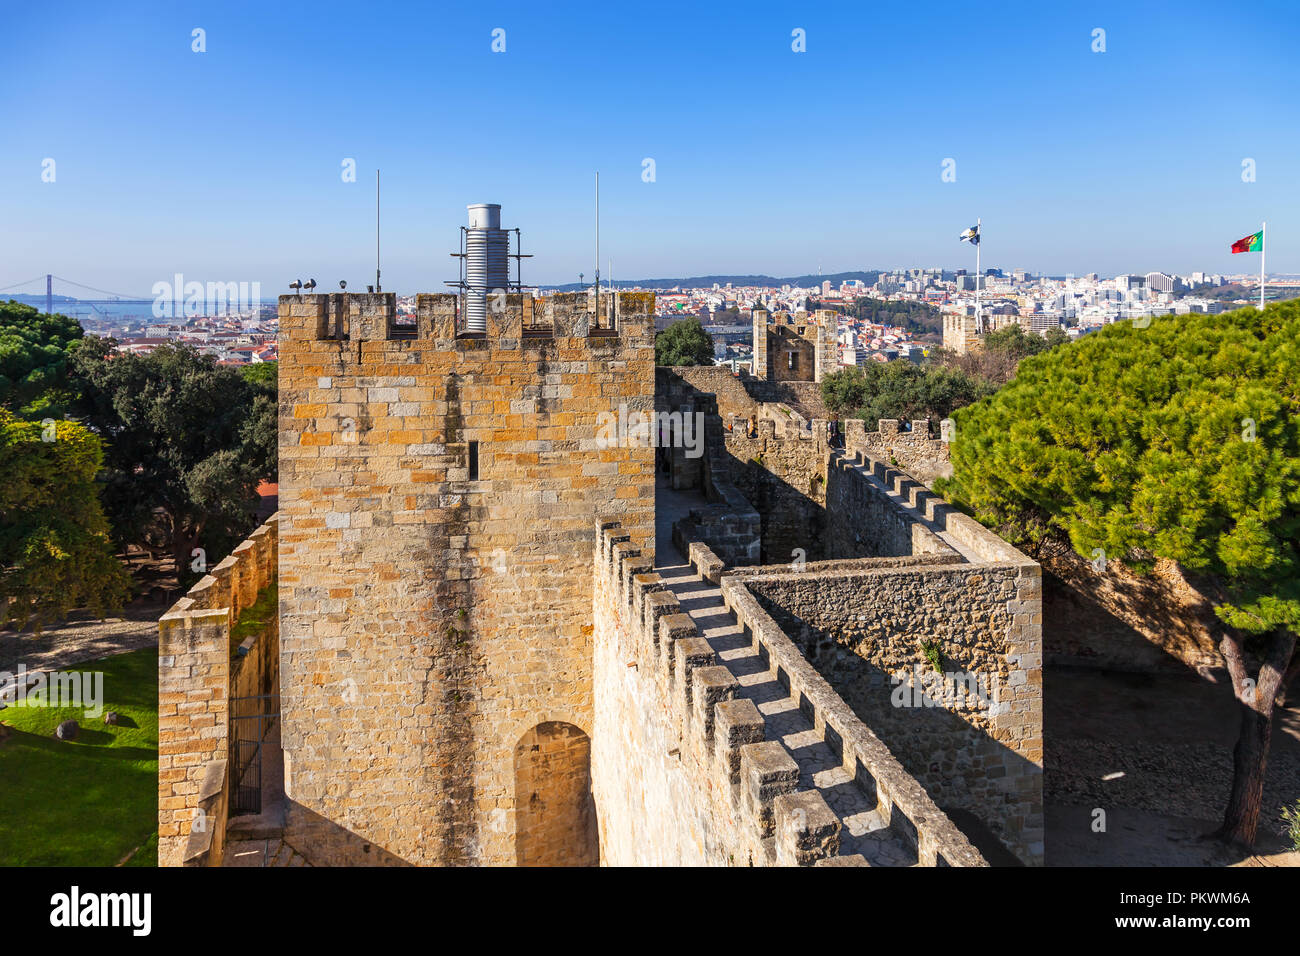 Lisbon, Portugal - February 1, 2017: Castelo de Sao Jorge aka Saint George Castle. Barbican structure on the keep entrance and the Ulysses Tower. - Stock Image